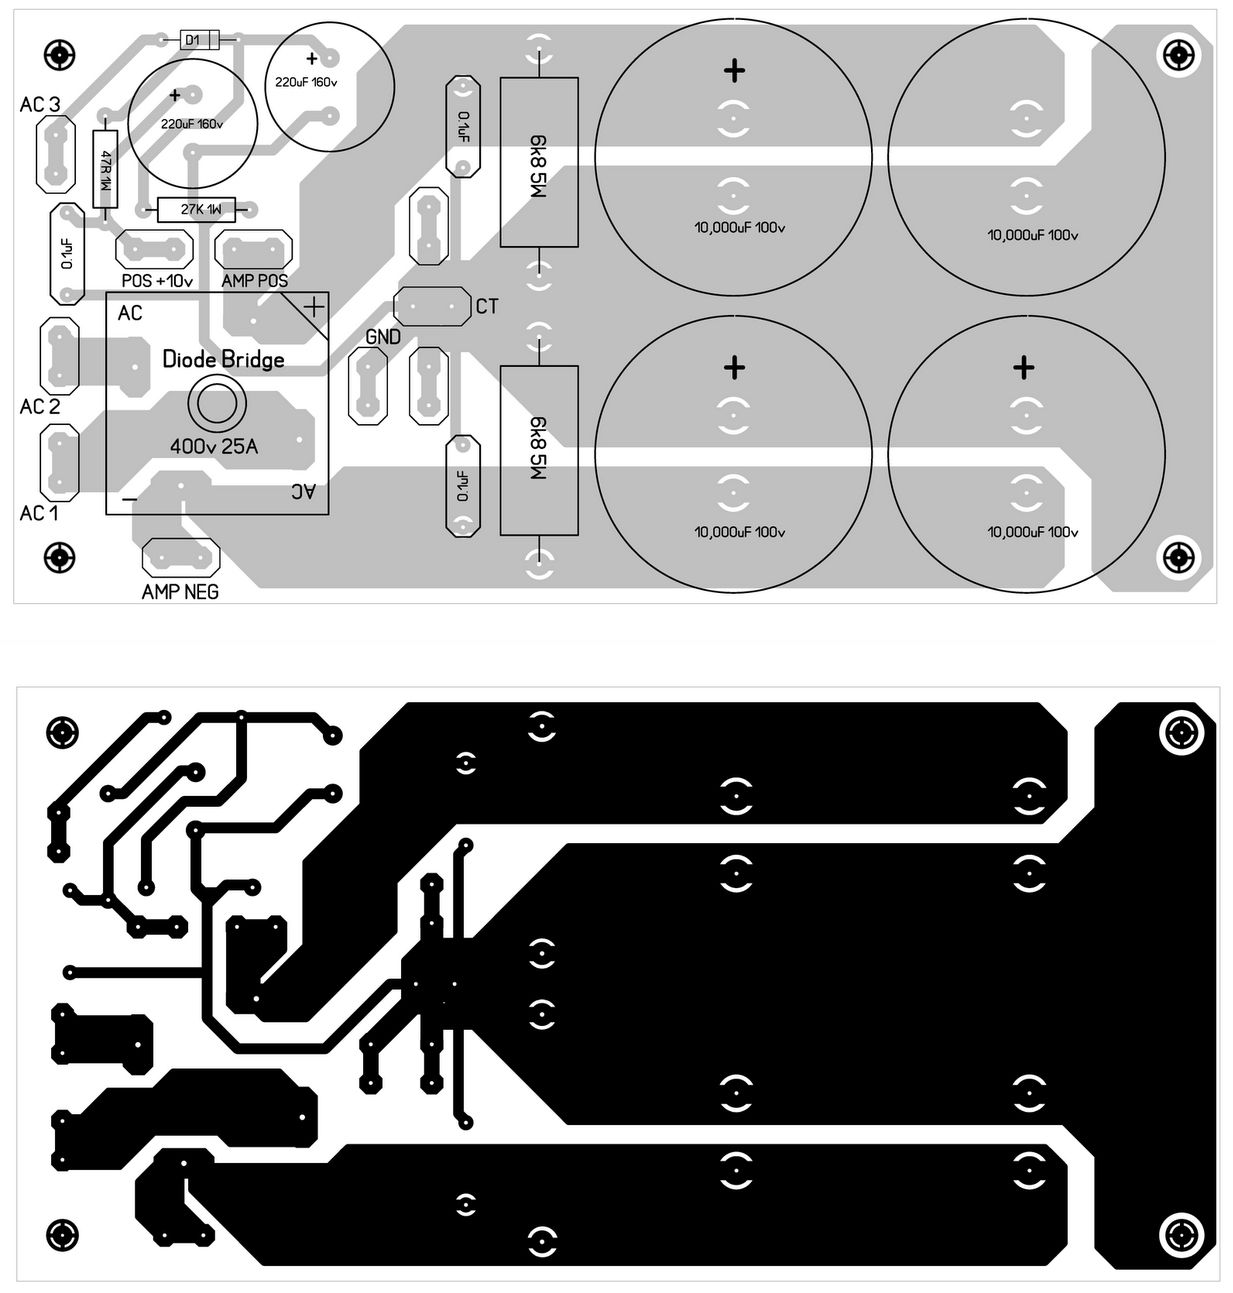 Circuit Design 600 Watt Mosfet Power Amplifier With Pcb In 2018 Technology Suplly Layout Speaker Plans